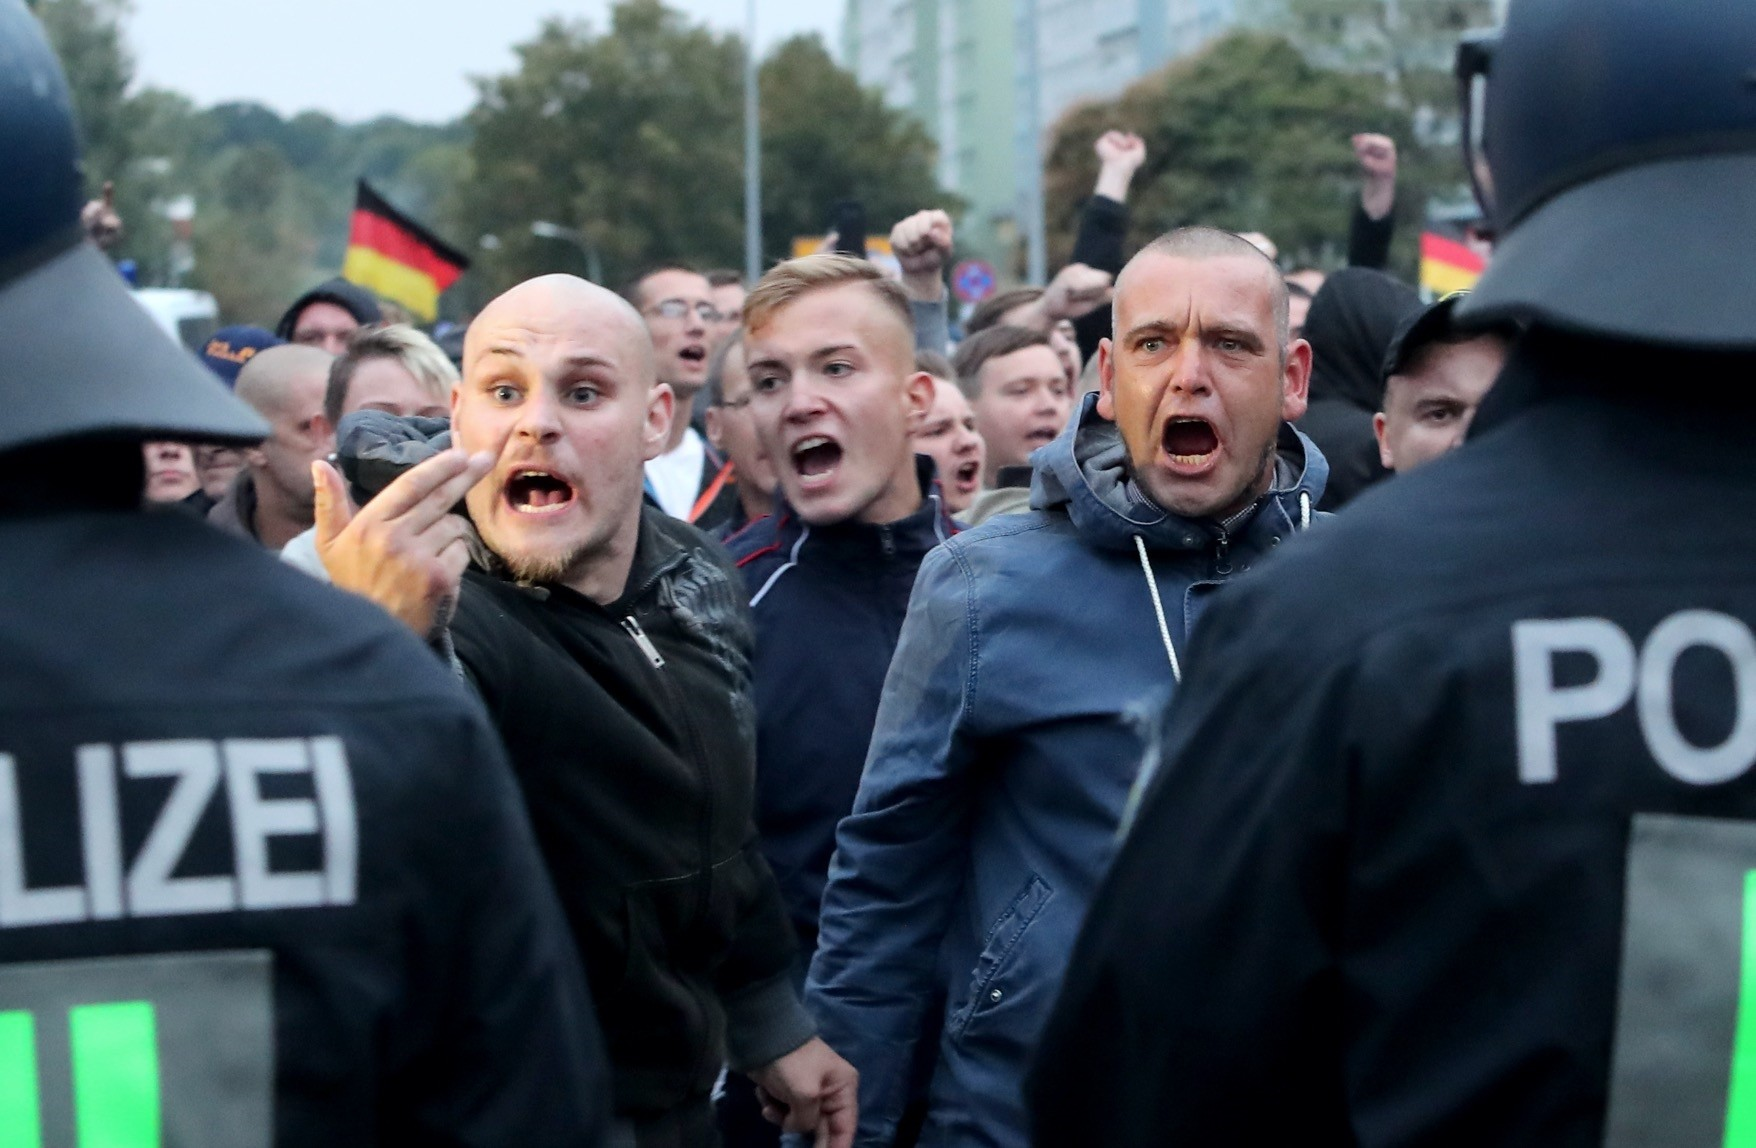 Right-wing protesters shout behind a row of police men, Chemnitz, Sept. 1.